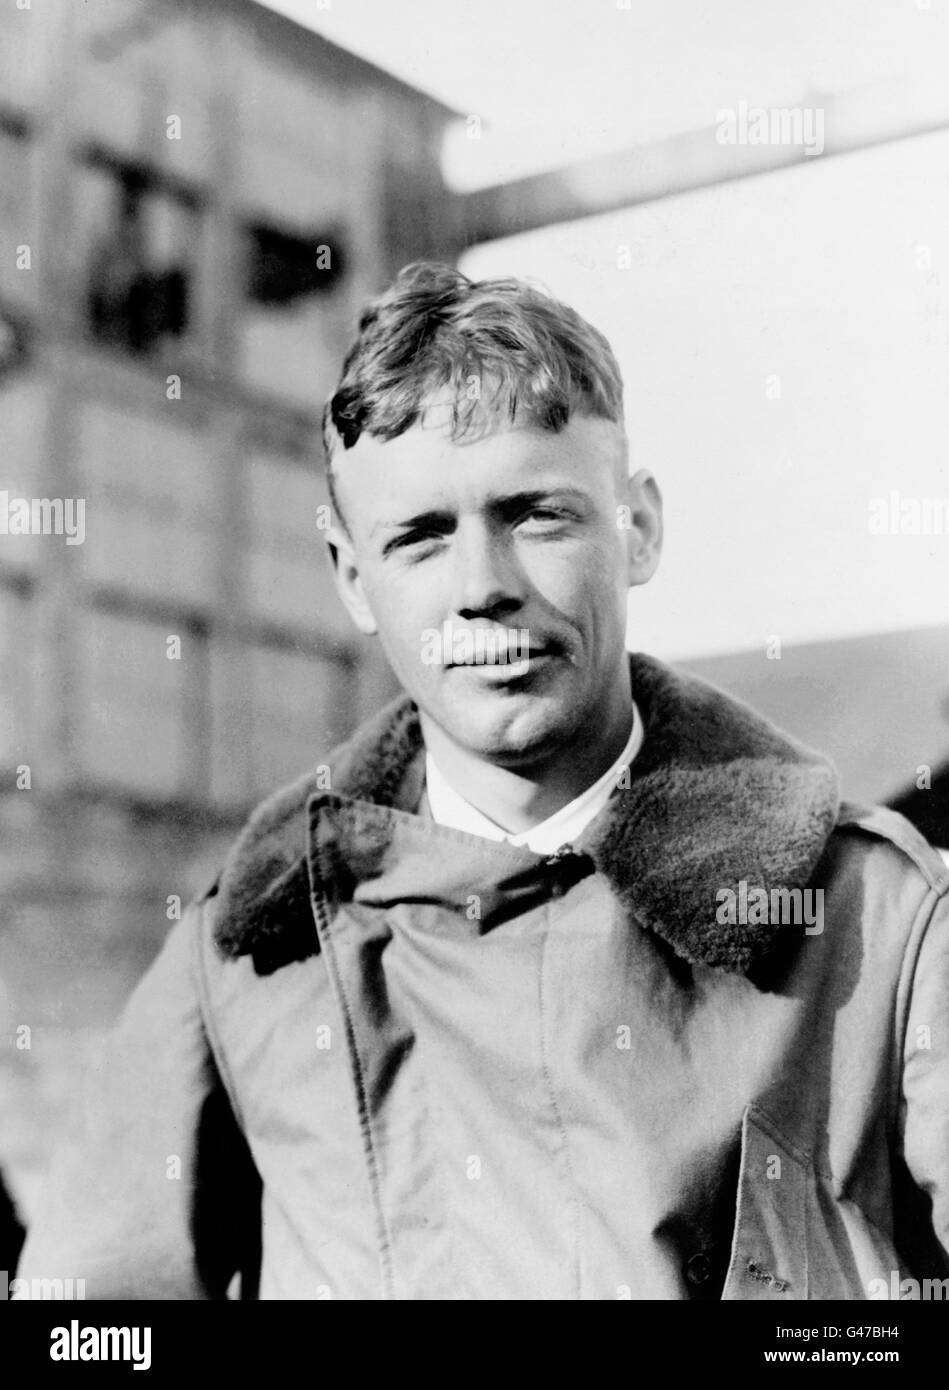 charles lindbergh and his contribution to Charles augustus lindbergh was born on feb 4, 1902, in detroit he was the son of charles augustus lindbergh, sr, a lawyer, who also served later as a us congressman from minnesota from 1907 to 1917, which would have opened a lot of doors for him, but he decided to follow his own path.